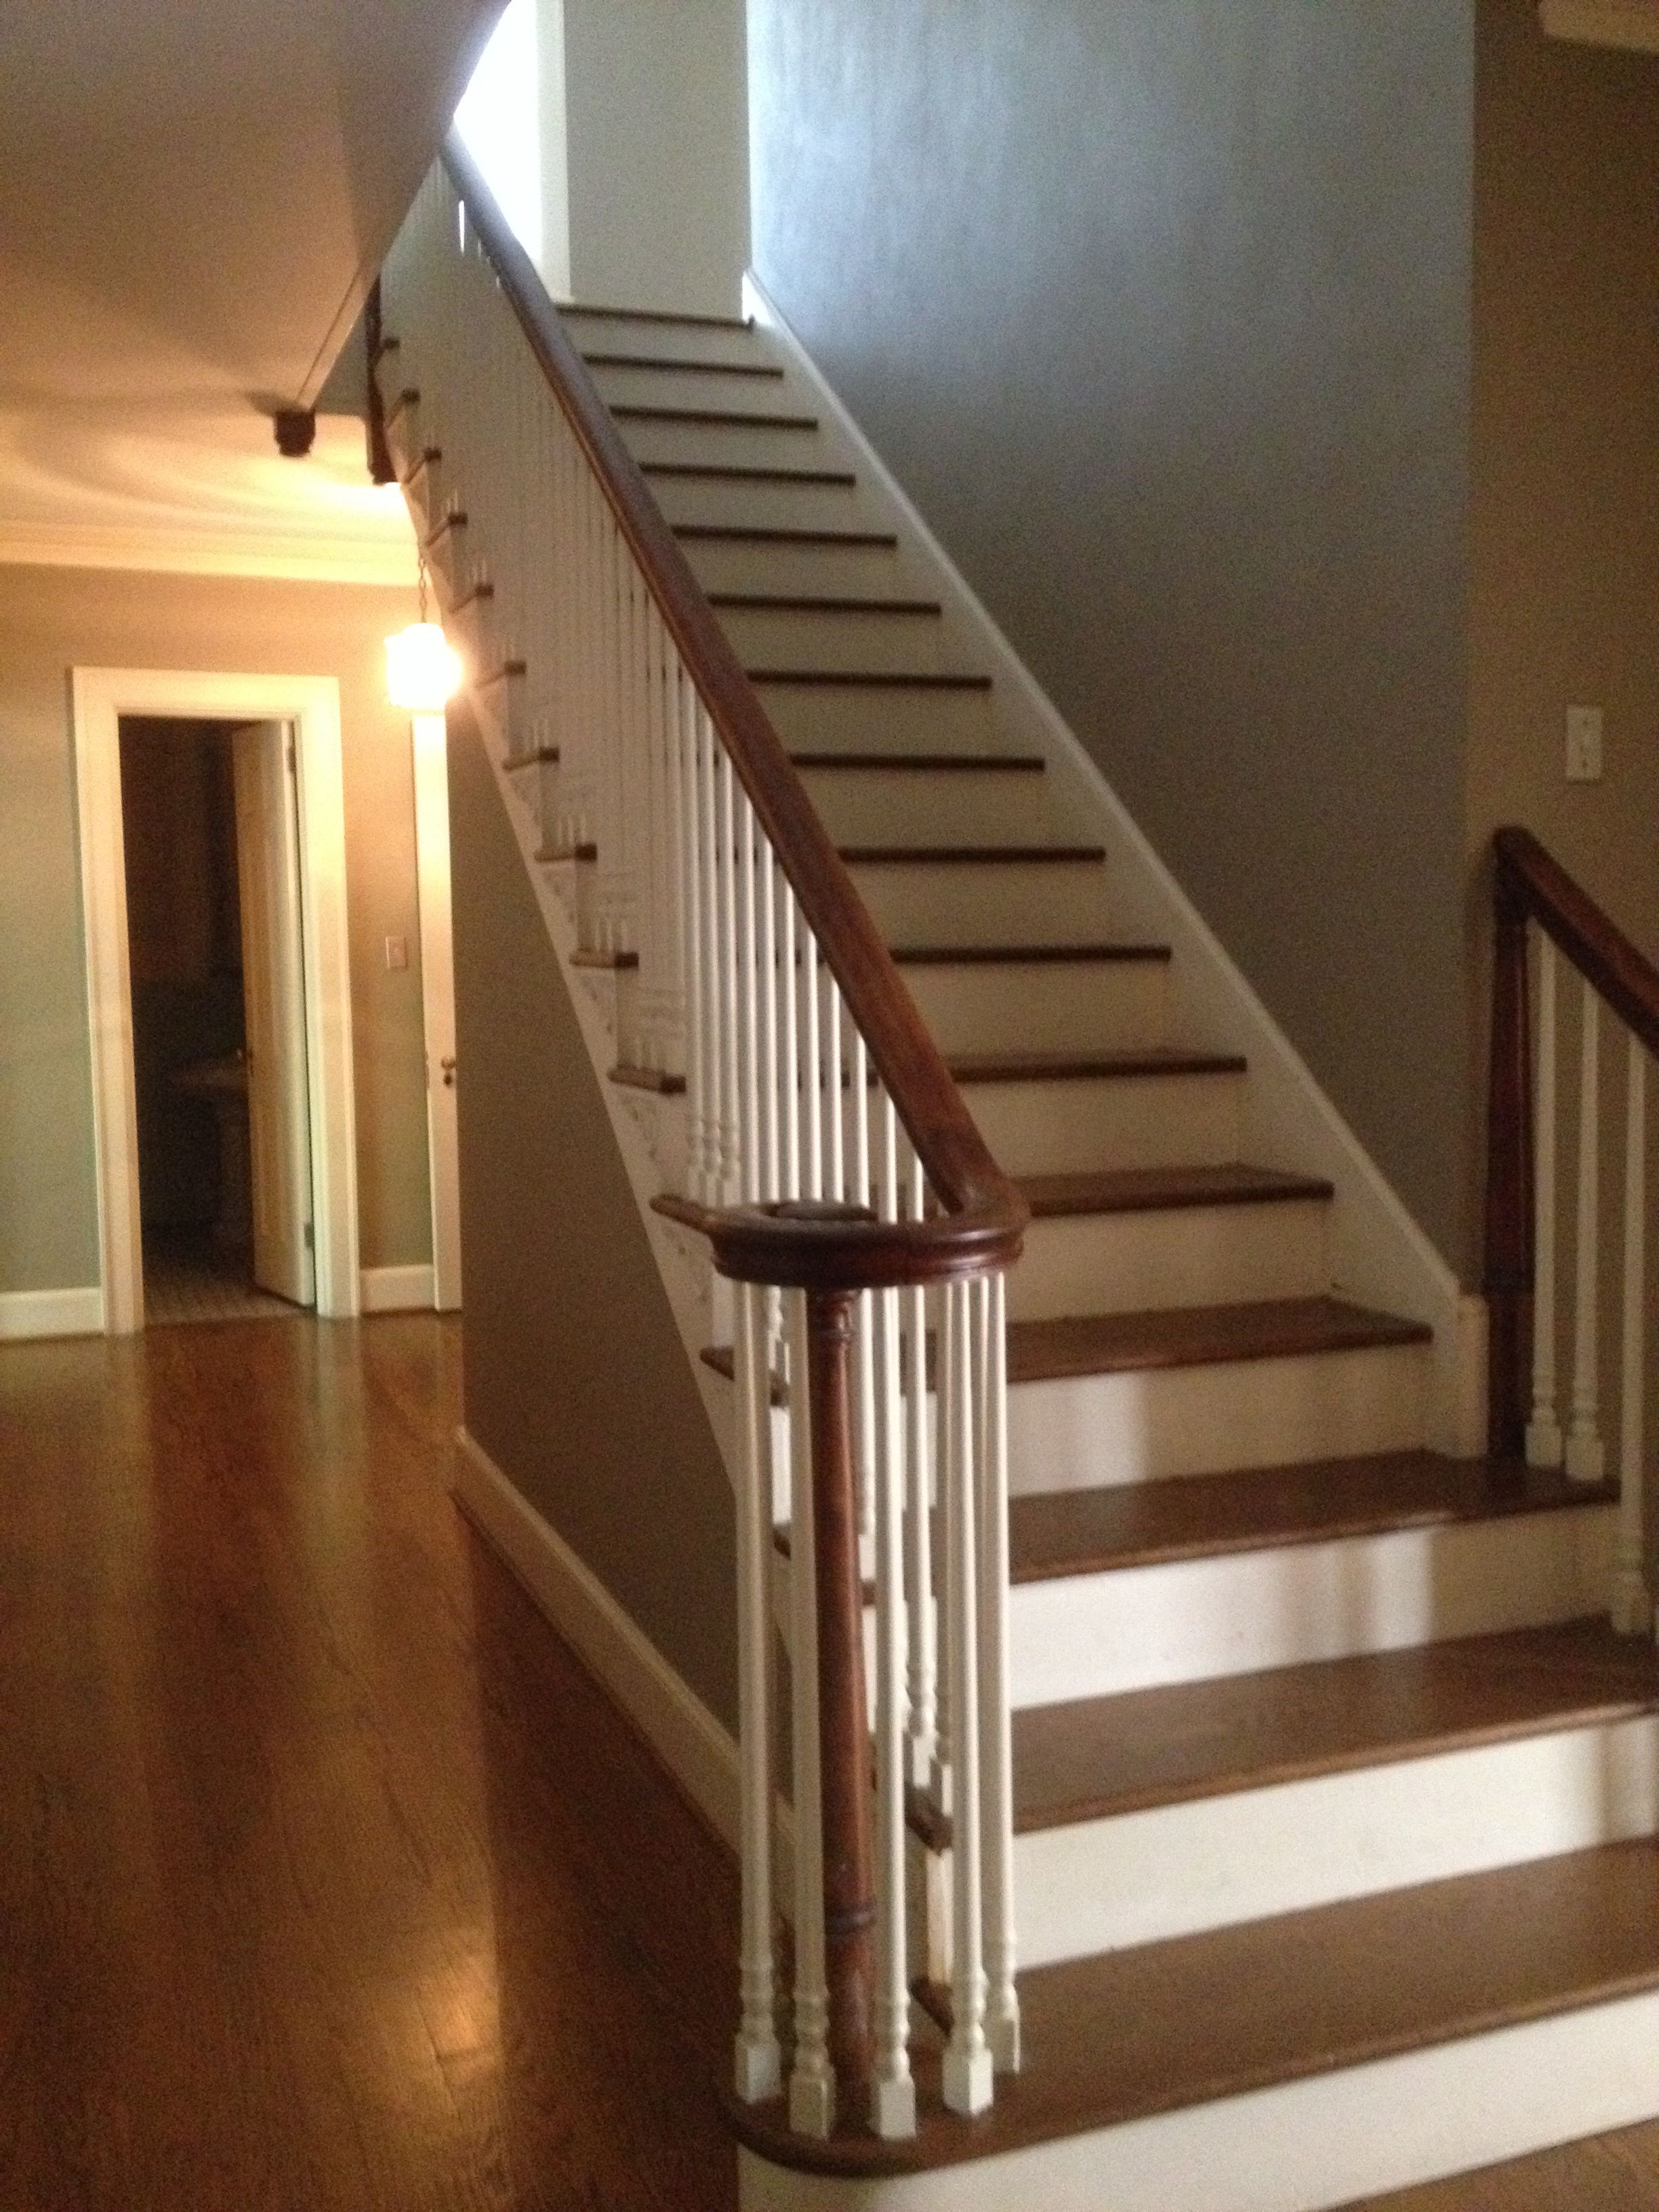 Colonial Revival 1940s Staircase 503 Circle Drive